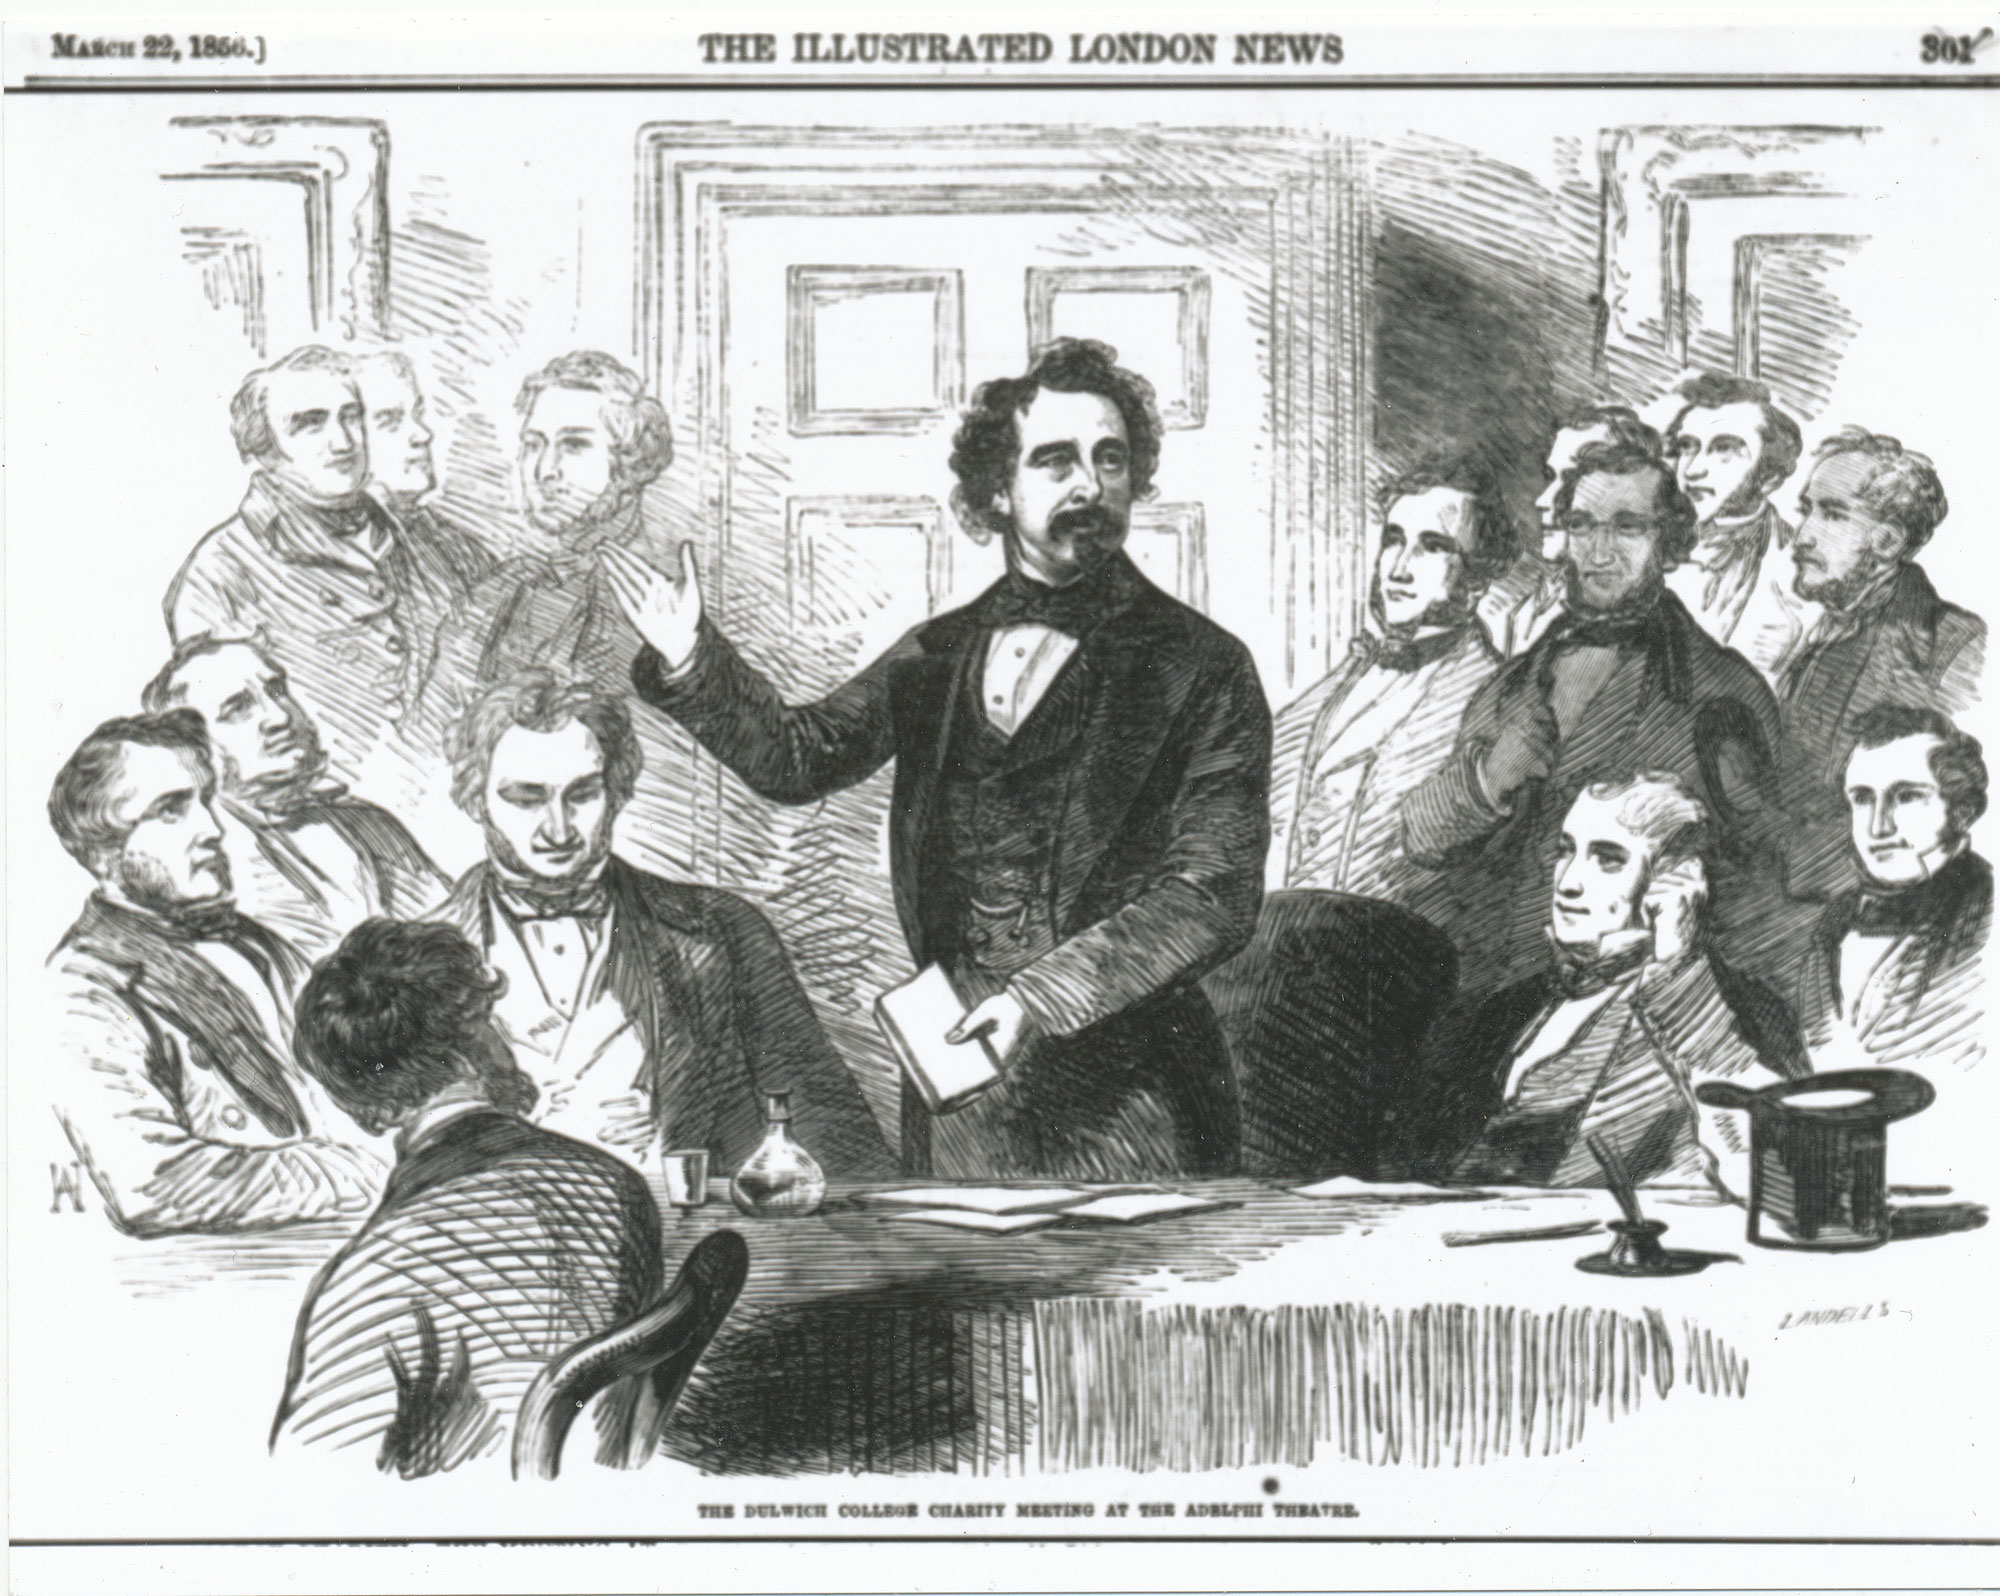 Charles Dickens speaking at the Dulwich College Charity Meeting at the Adelphi Theatre, from the Illustrated London News